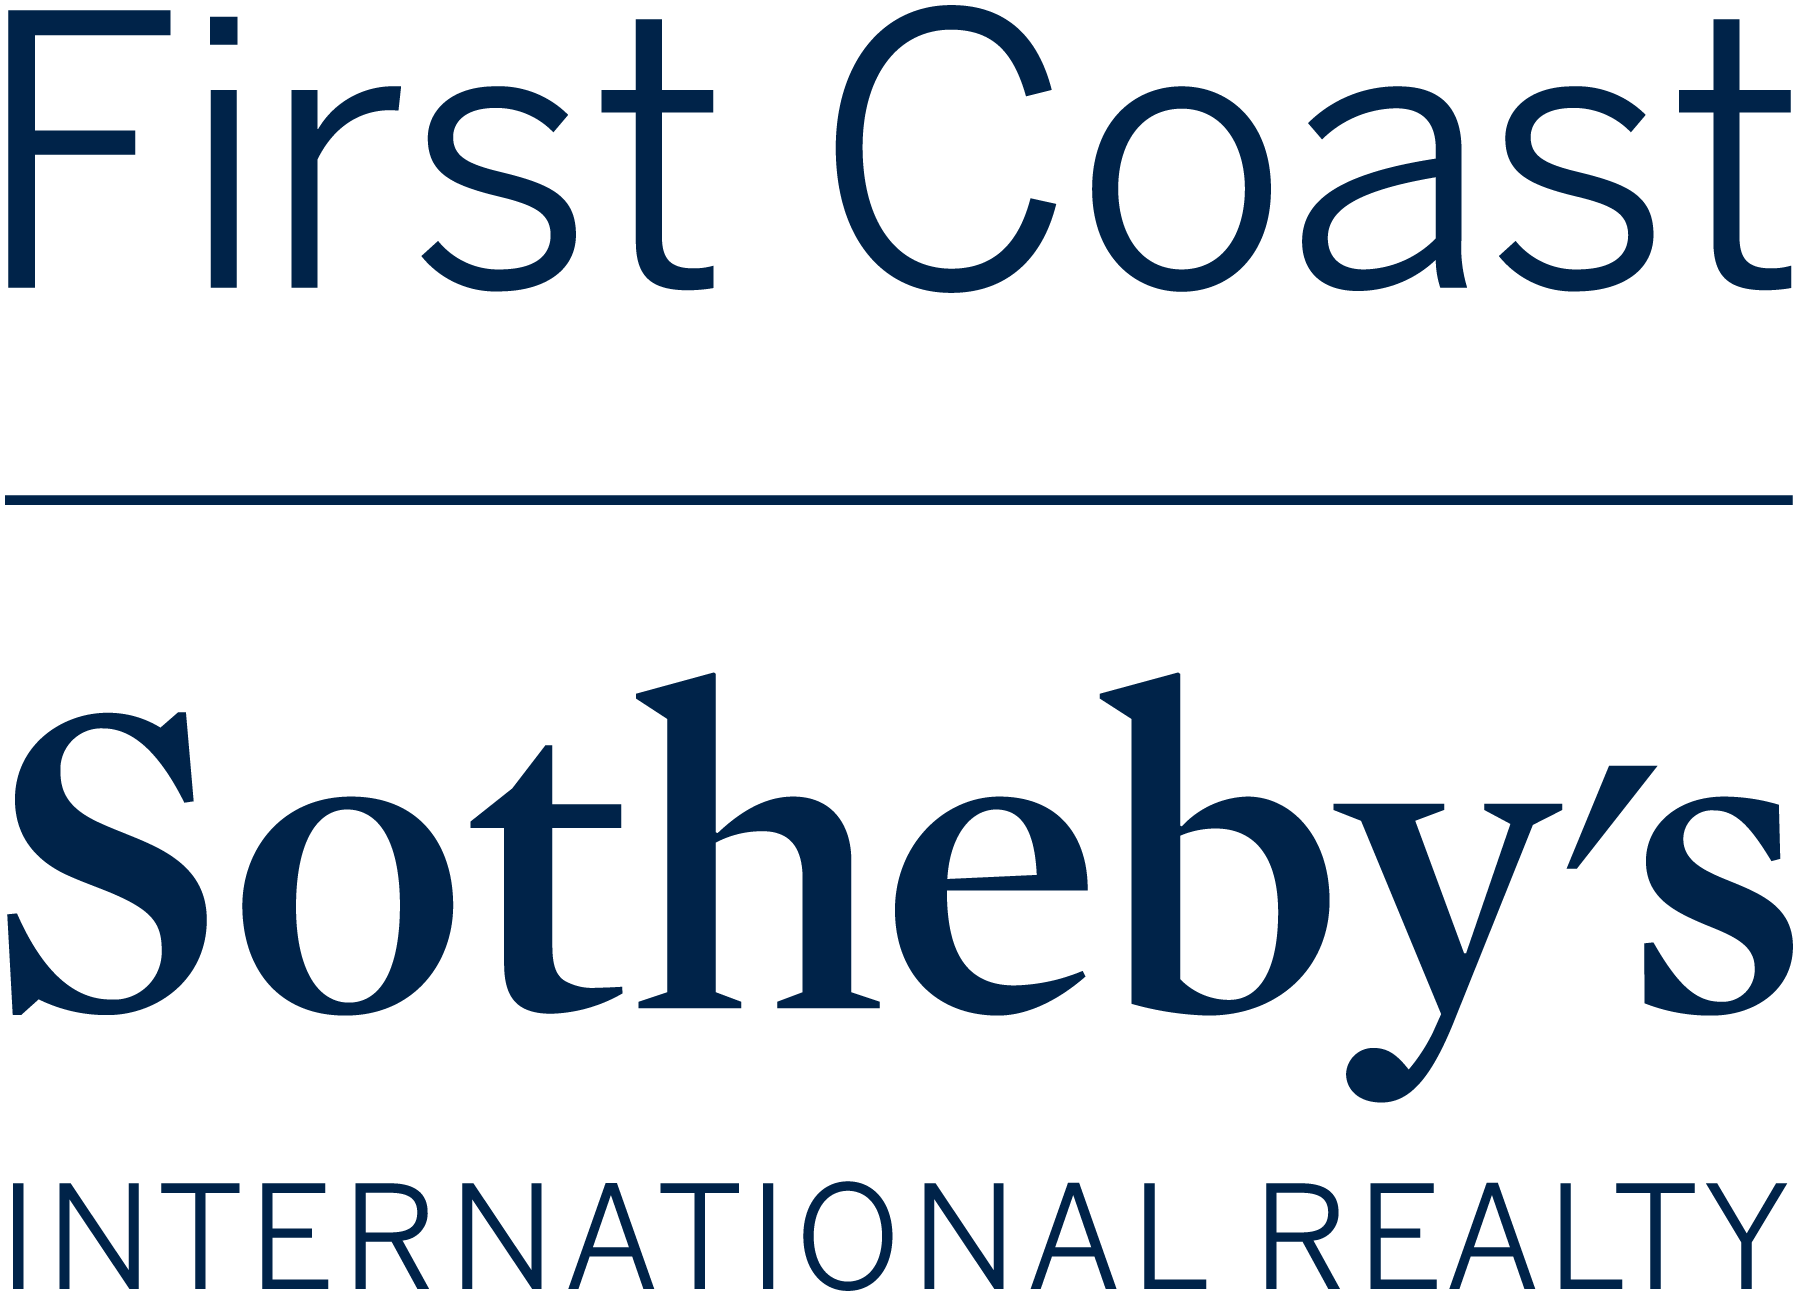 First Coast Sotheby's International Realty - St. Augustine